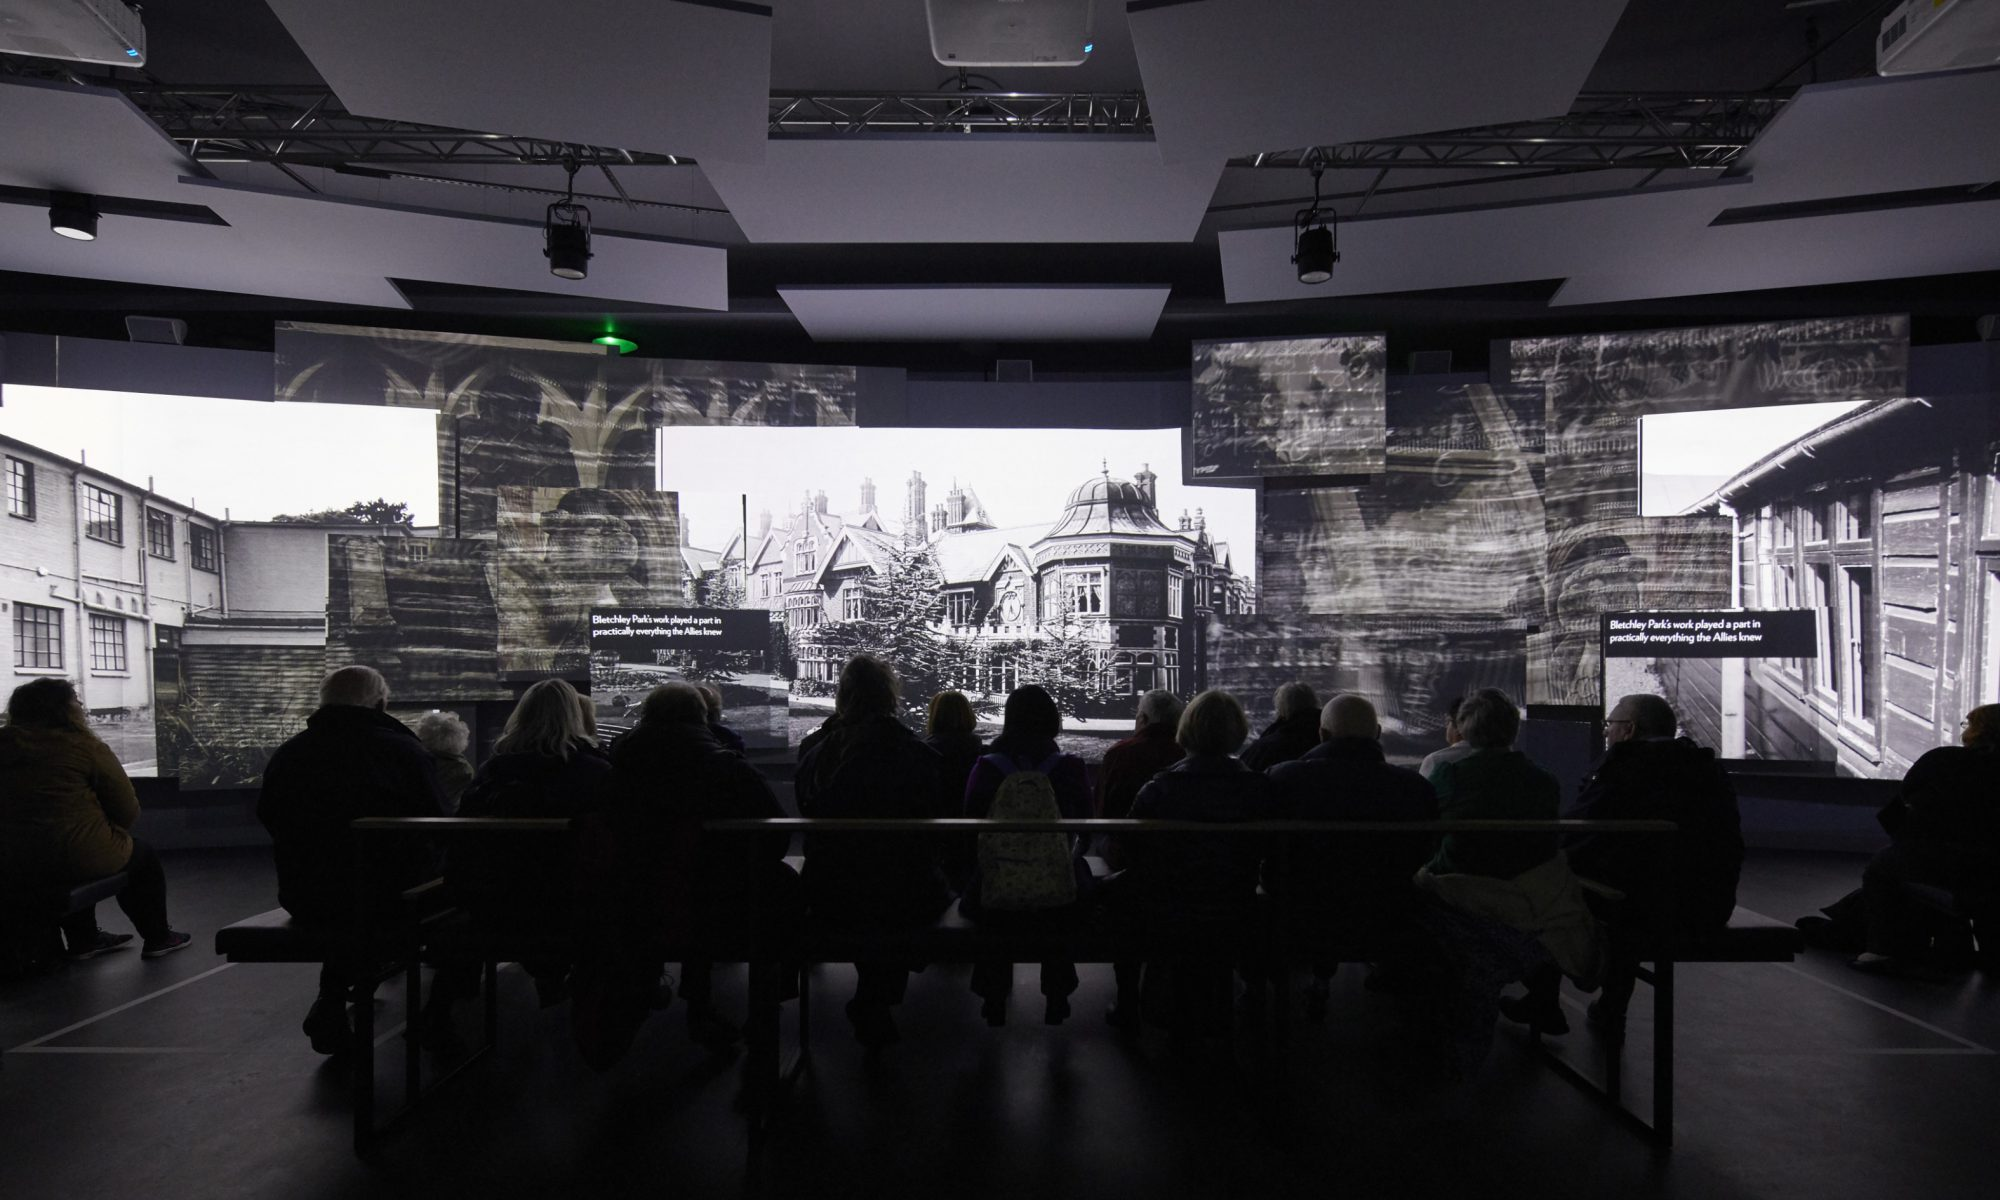 A group of people watch an animated display on the history of Bletchley Park and its role in WW2.